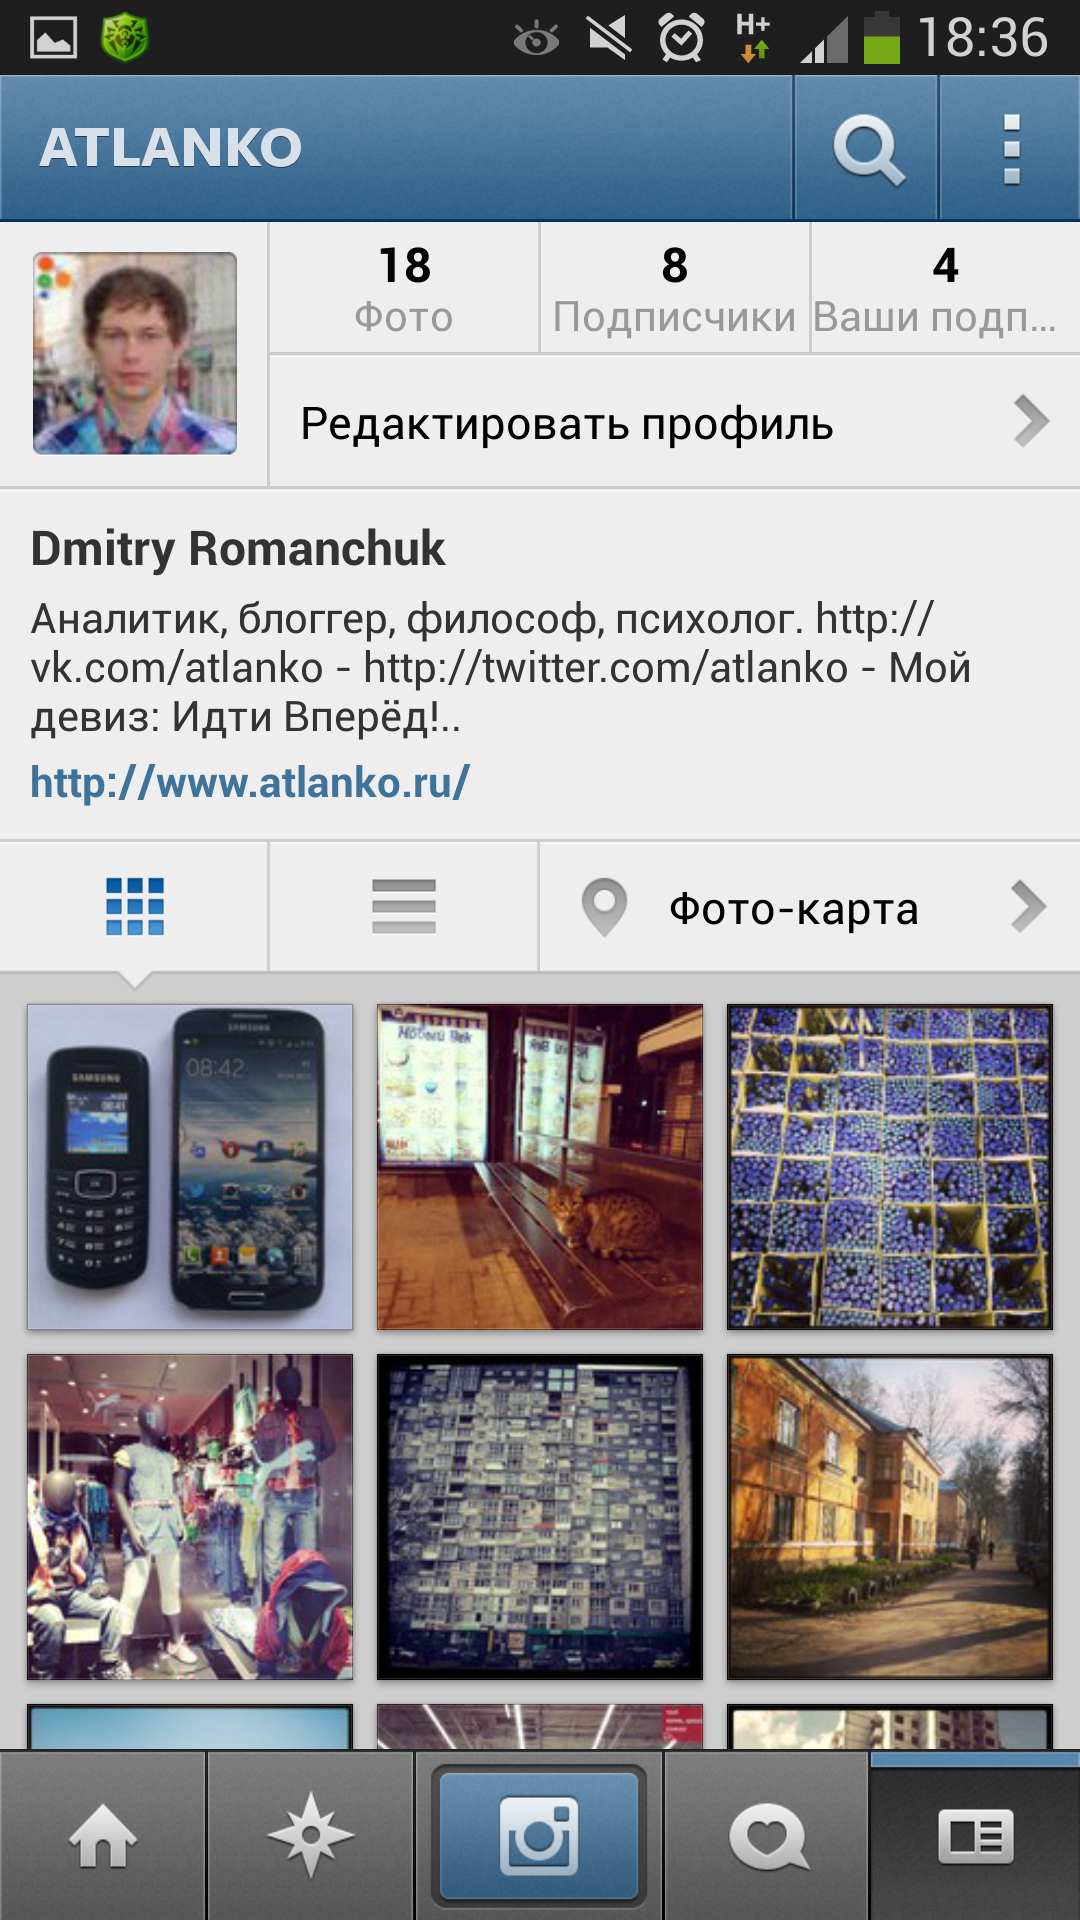 Atlanko Instagram